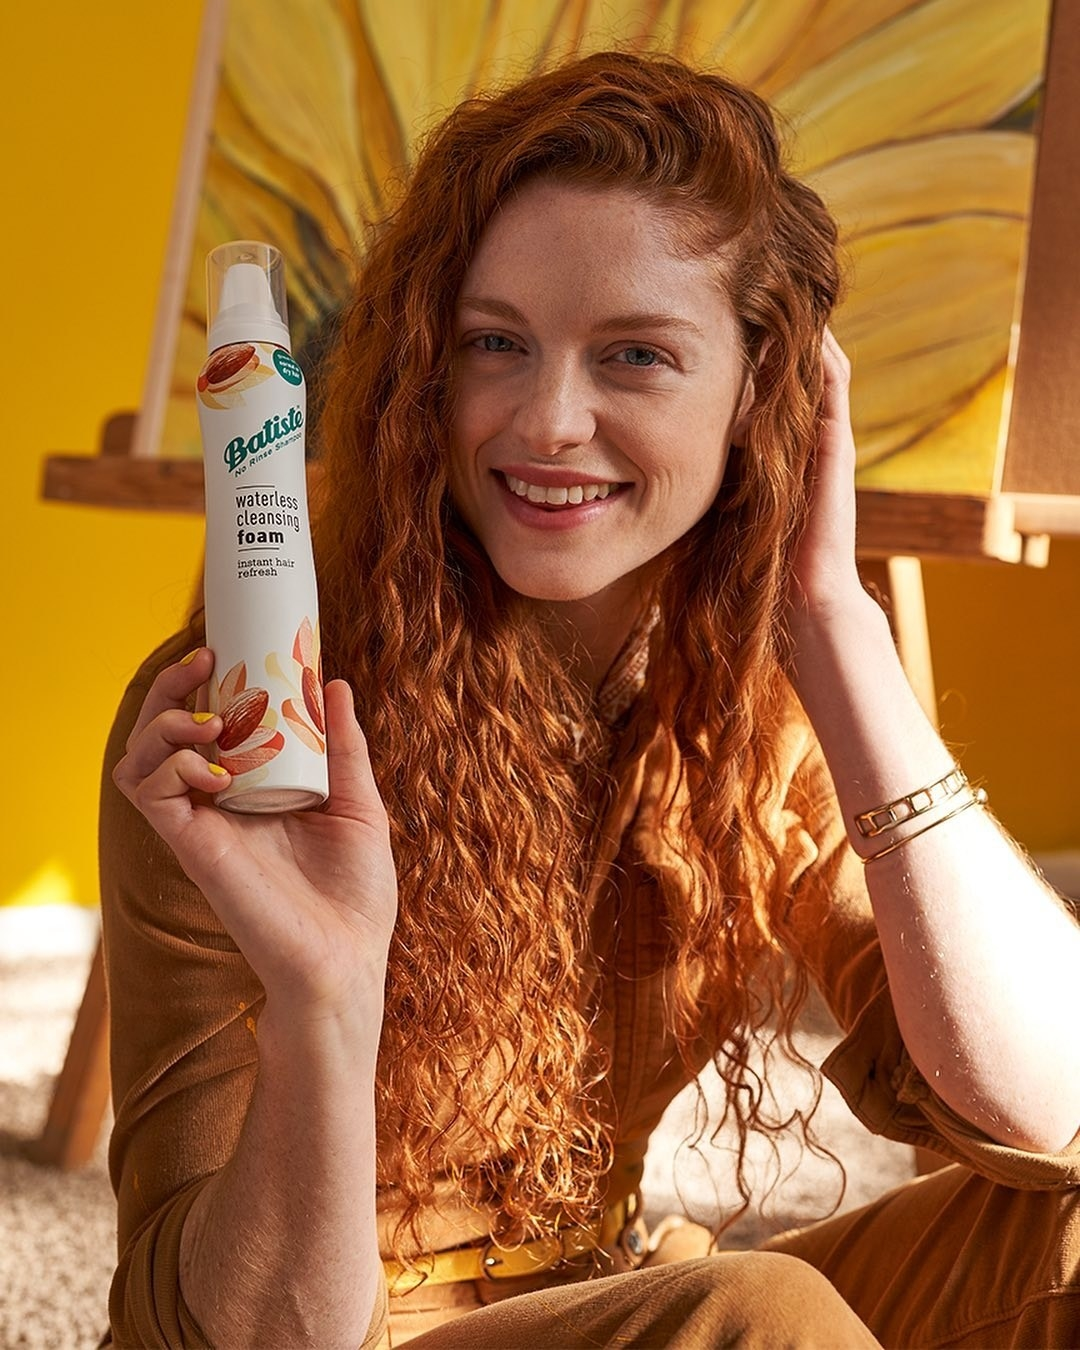 A person holds Batiste Waterless Cleansing foam and their hair is curly and refreshed looking